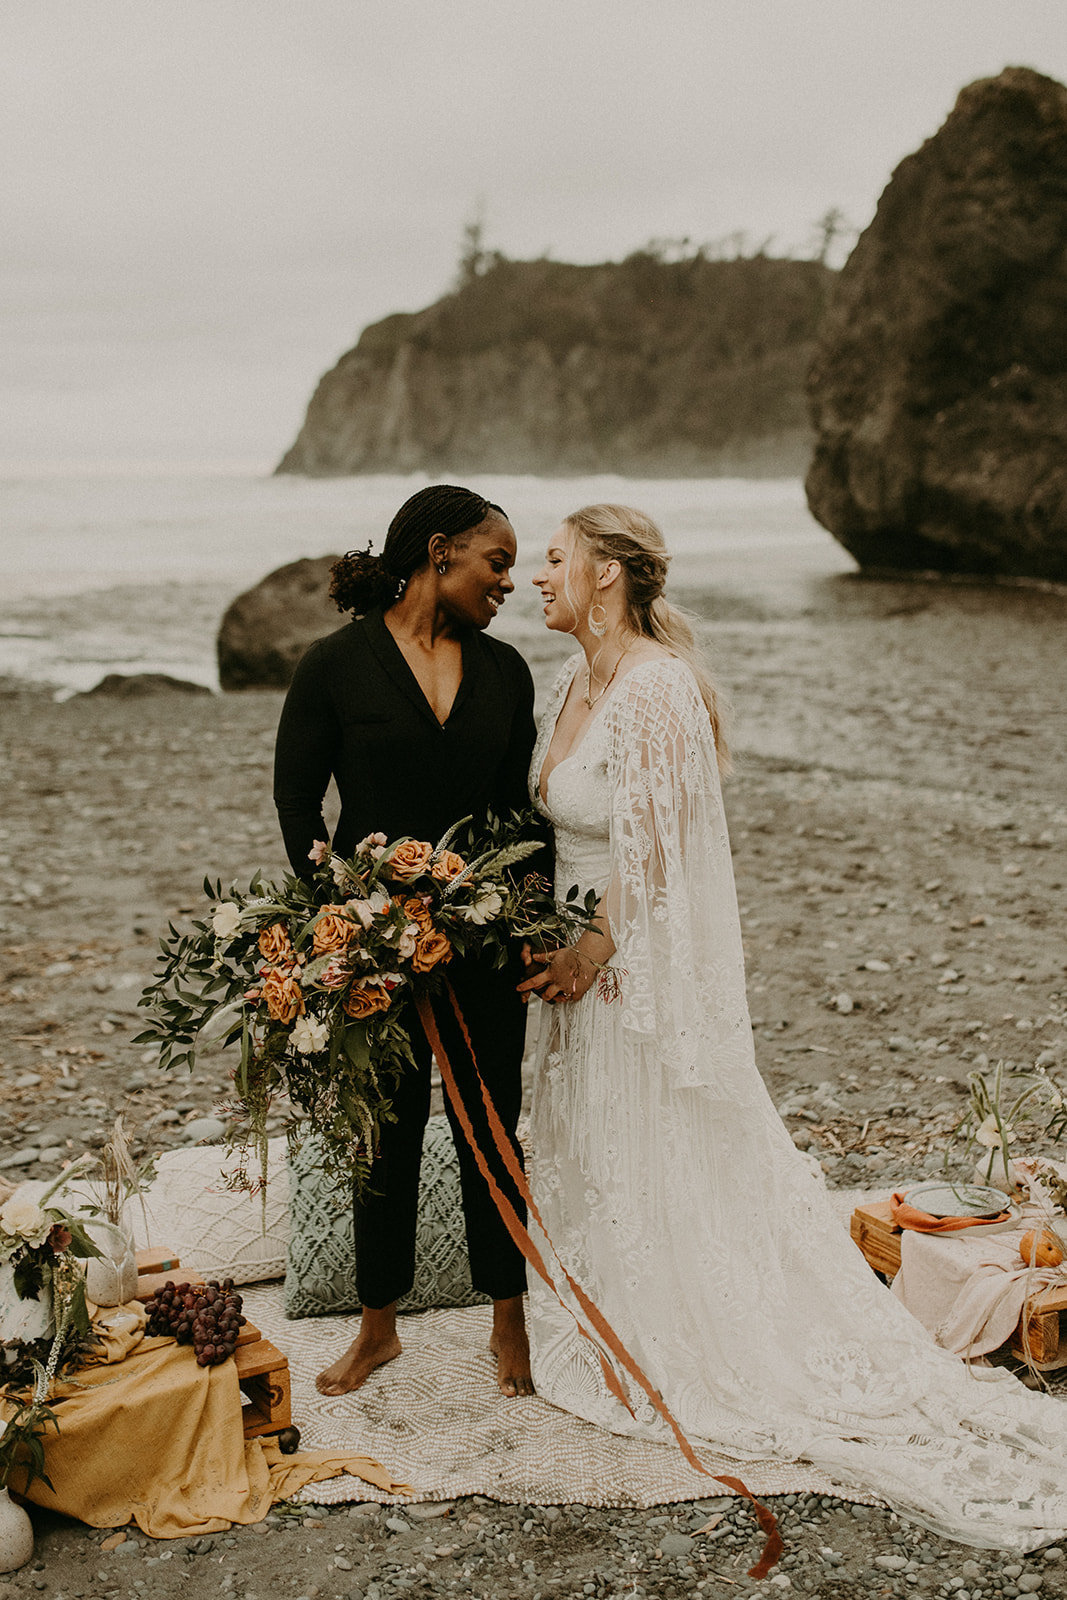 Ruby_Beach_Styled_Elopement_-_Run_Away_with_Me_Elopement_Collective_-_Kamra_Fuller_Photography_-_Portraits-130